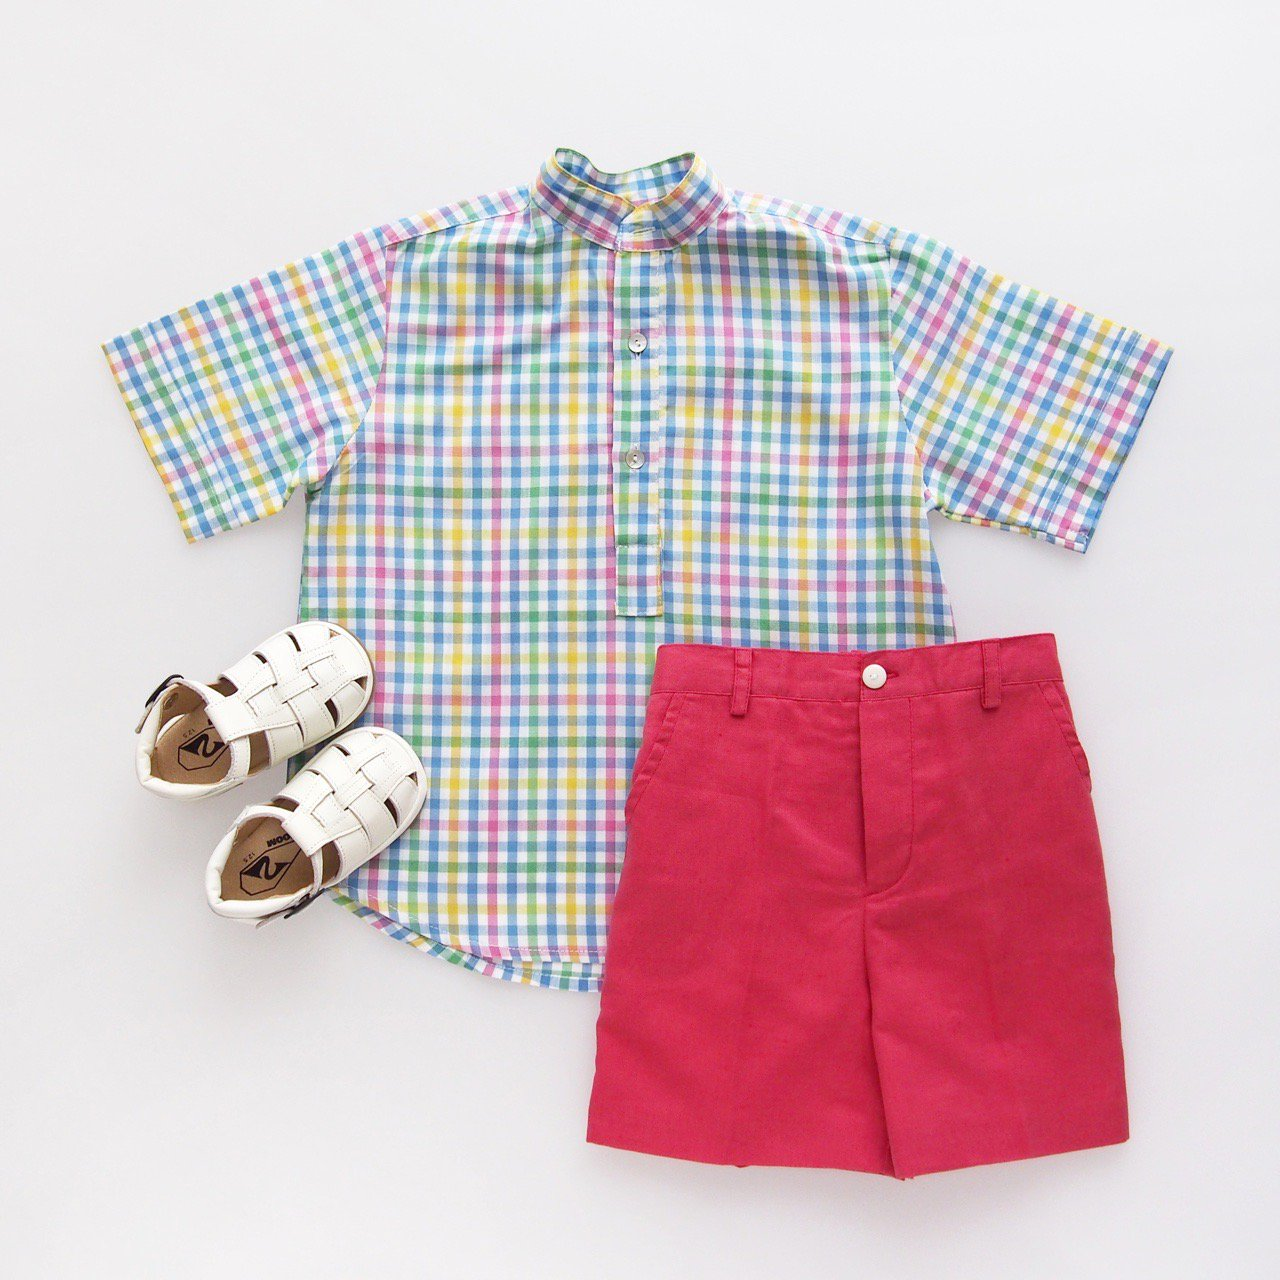 <img class='new_mark_img1' src='https://img.shop-pro.jp/img/new/icons14.gif' style='border:none;display:inline;margin:0px;padding:0px;width:auto;' />Pi & Pa - Multi gingham boy's shirt